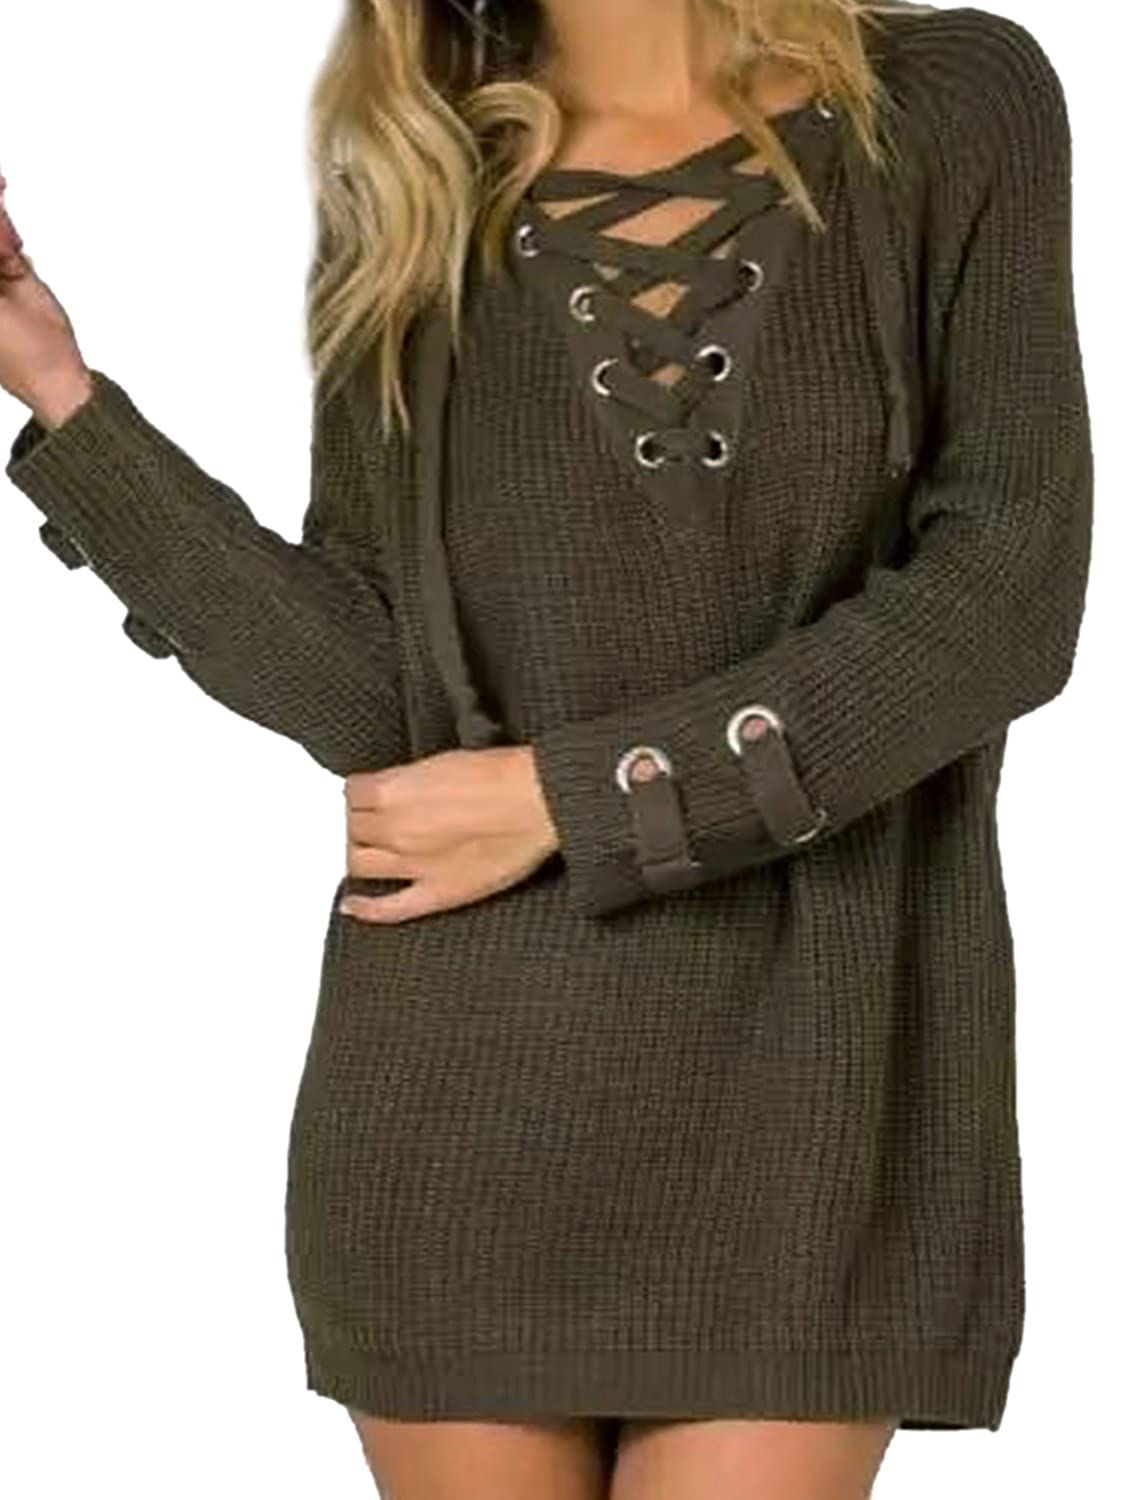 Joeoy Women s Army Green Lace Up Front V Neck Long Sleeve Knit Sweater  Dress Top-M at Amazon Women s Clothing store  626f2199b